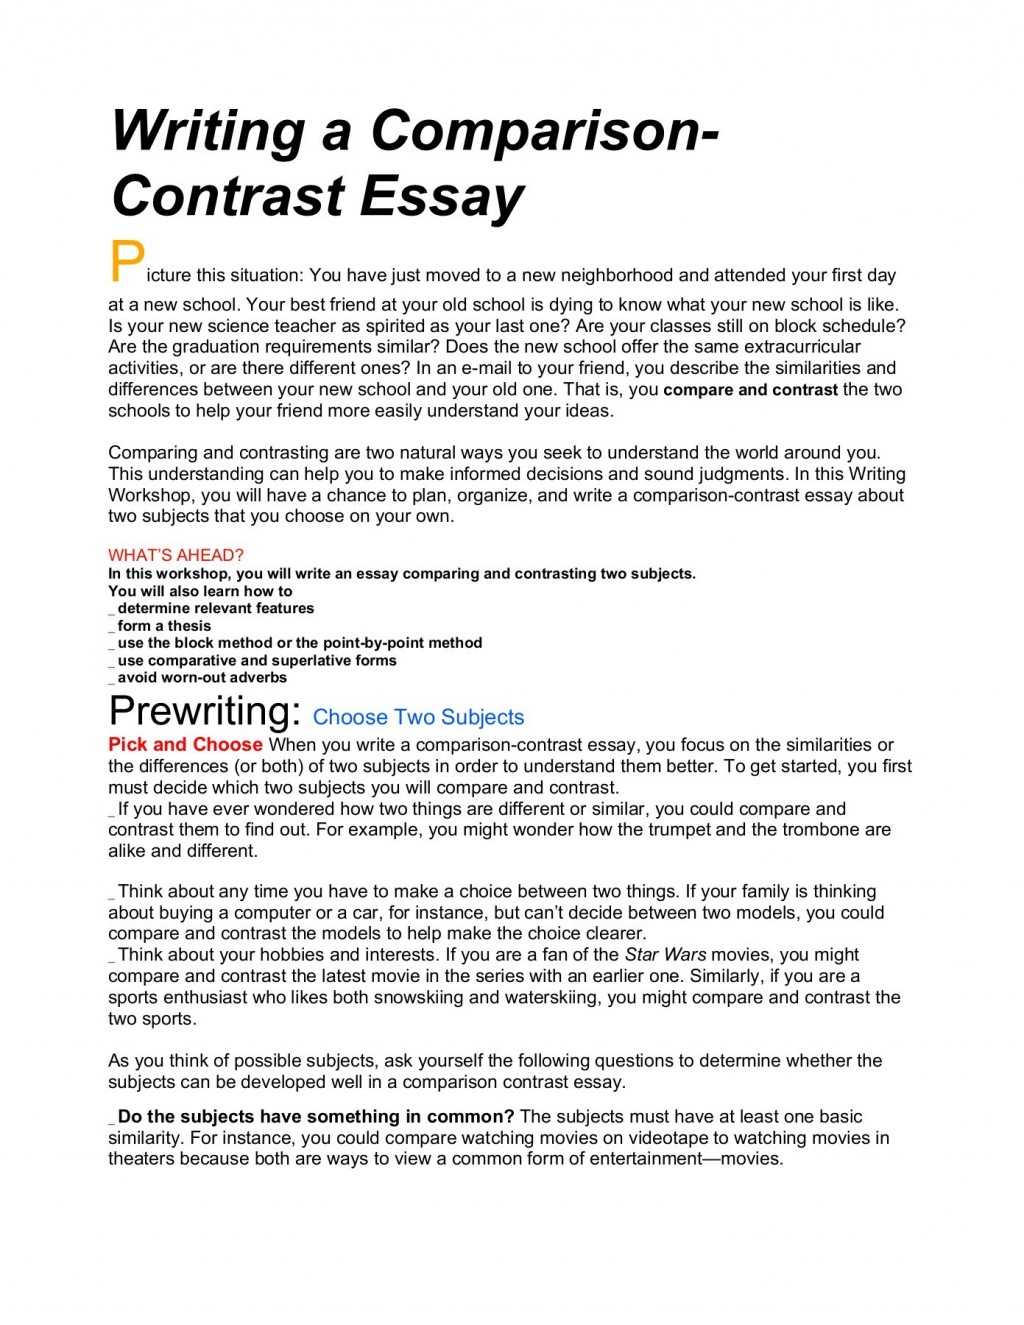 006 Essay Example Comparison And Awful Contrast Rubric Compare Template Word Large